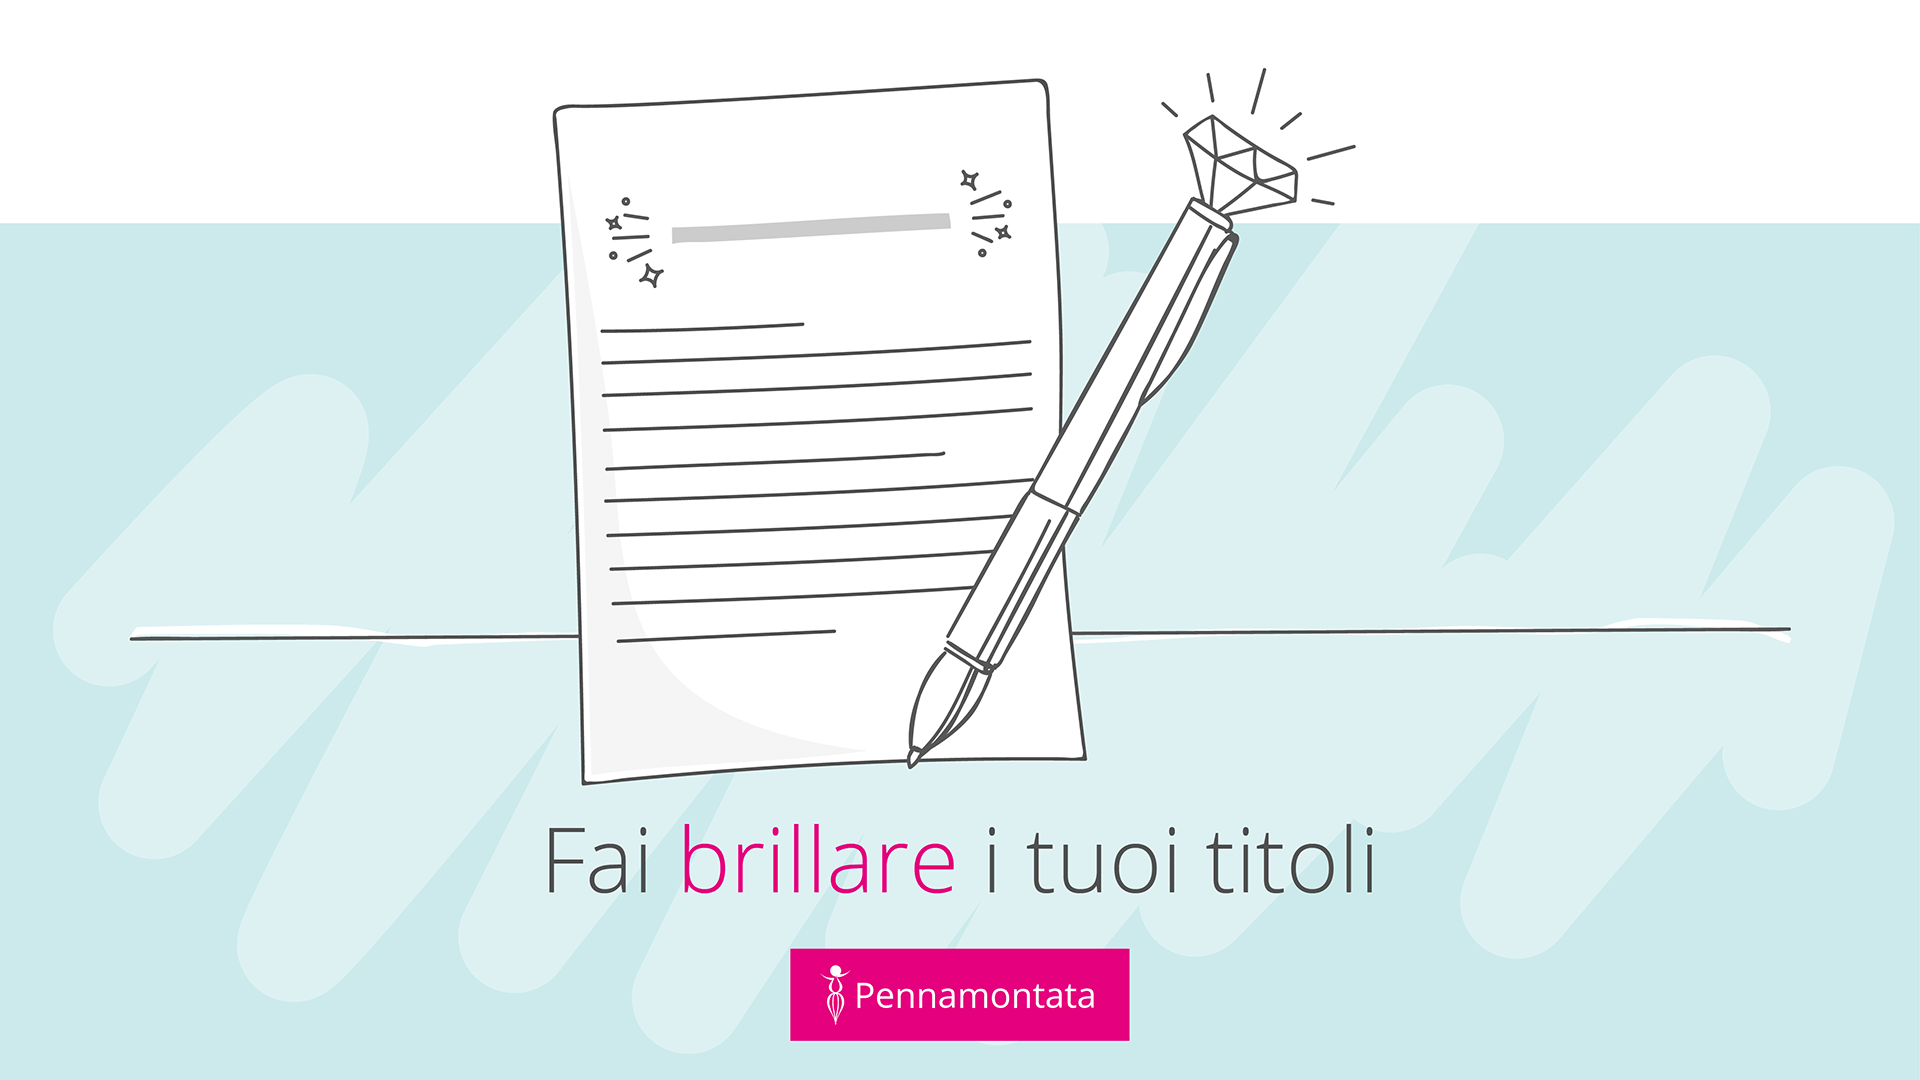 Web copywriting. Come scrivere bei titoli per blog post